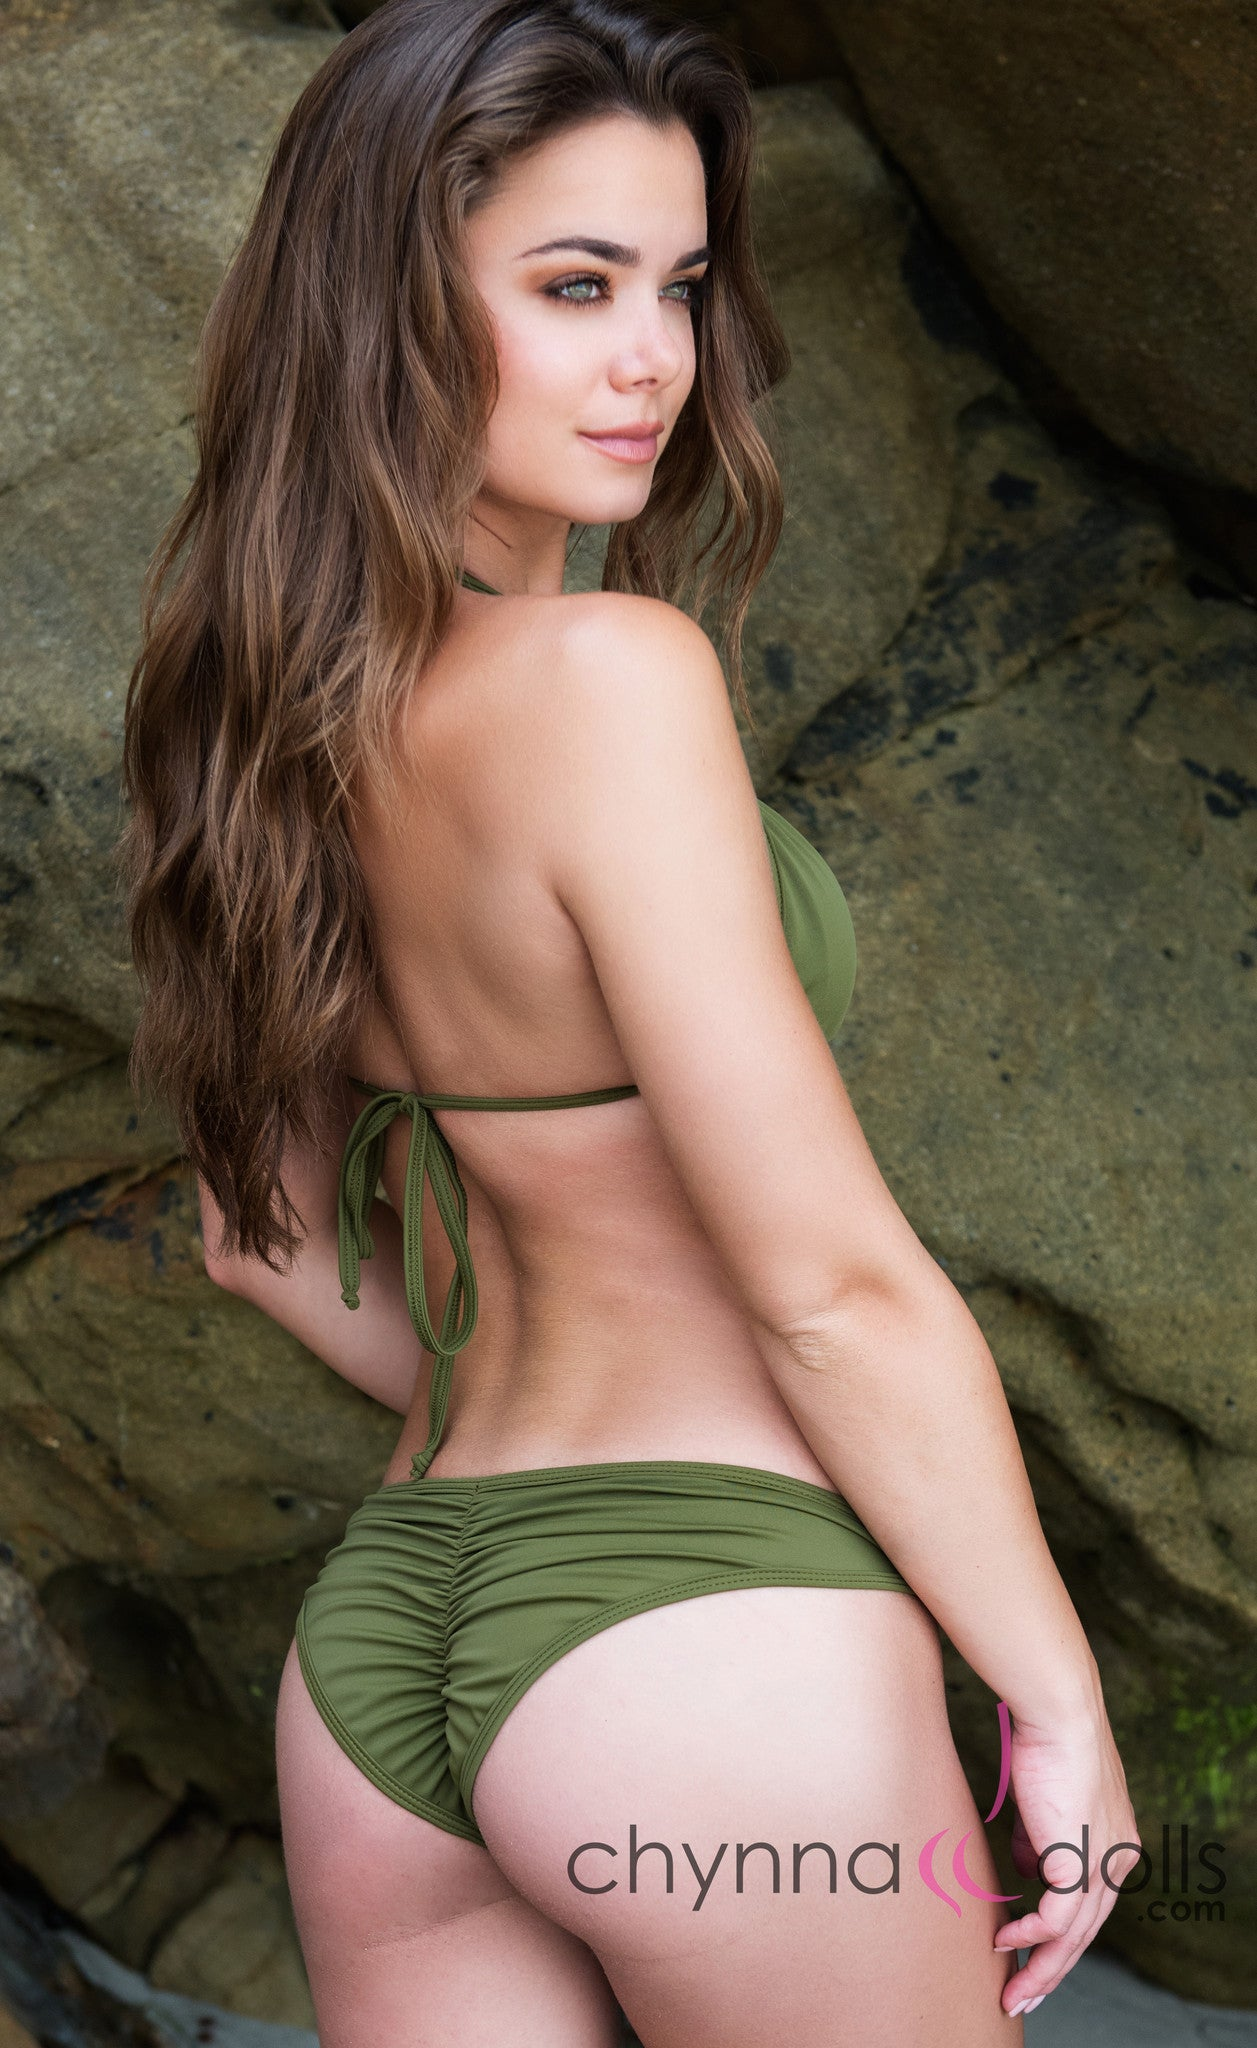 St. Barths: Scrunch Bottom Bikini in Olive w/ Chain Brooch - Chynna Dolls Swimwear